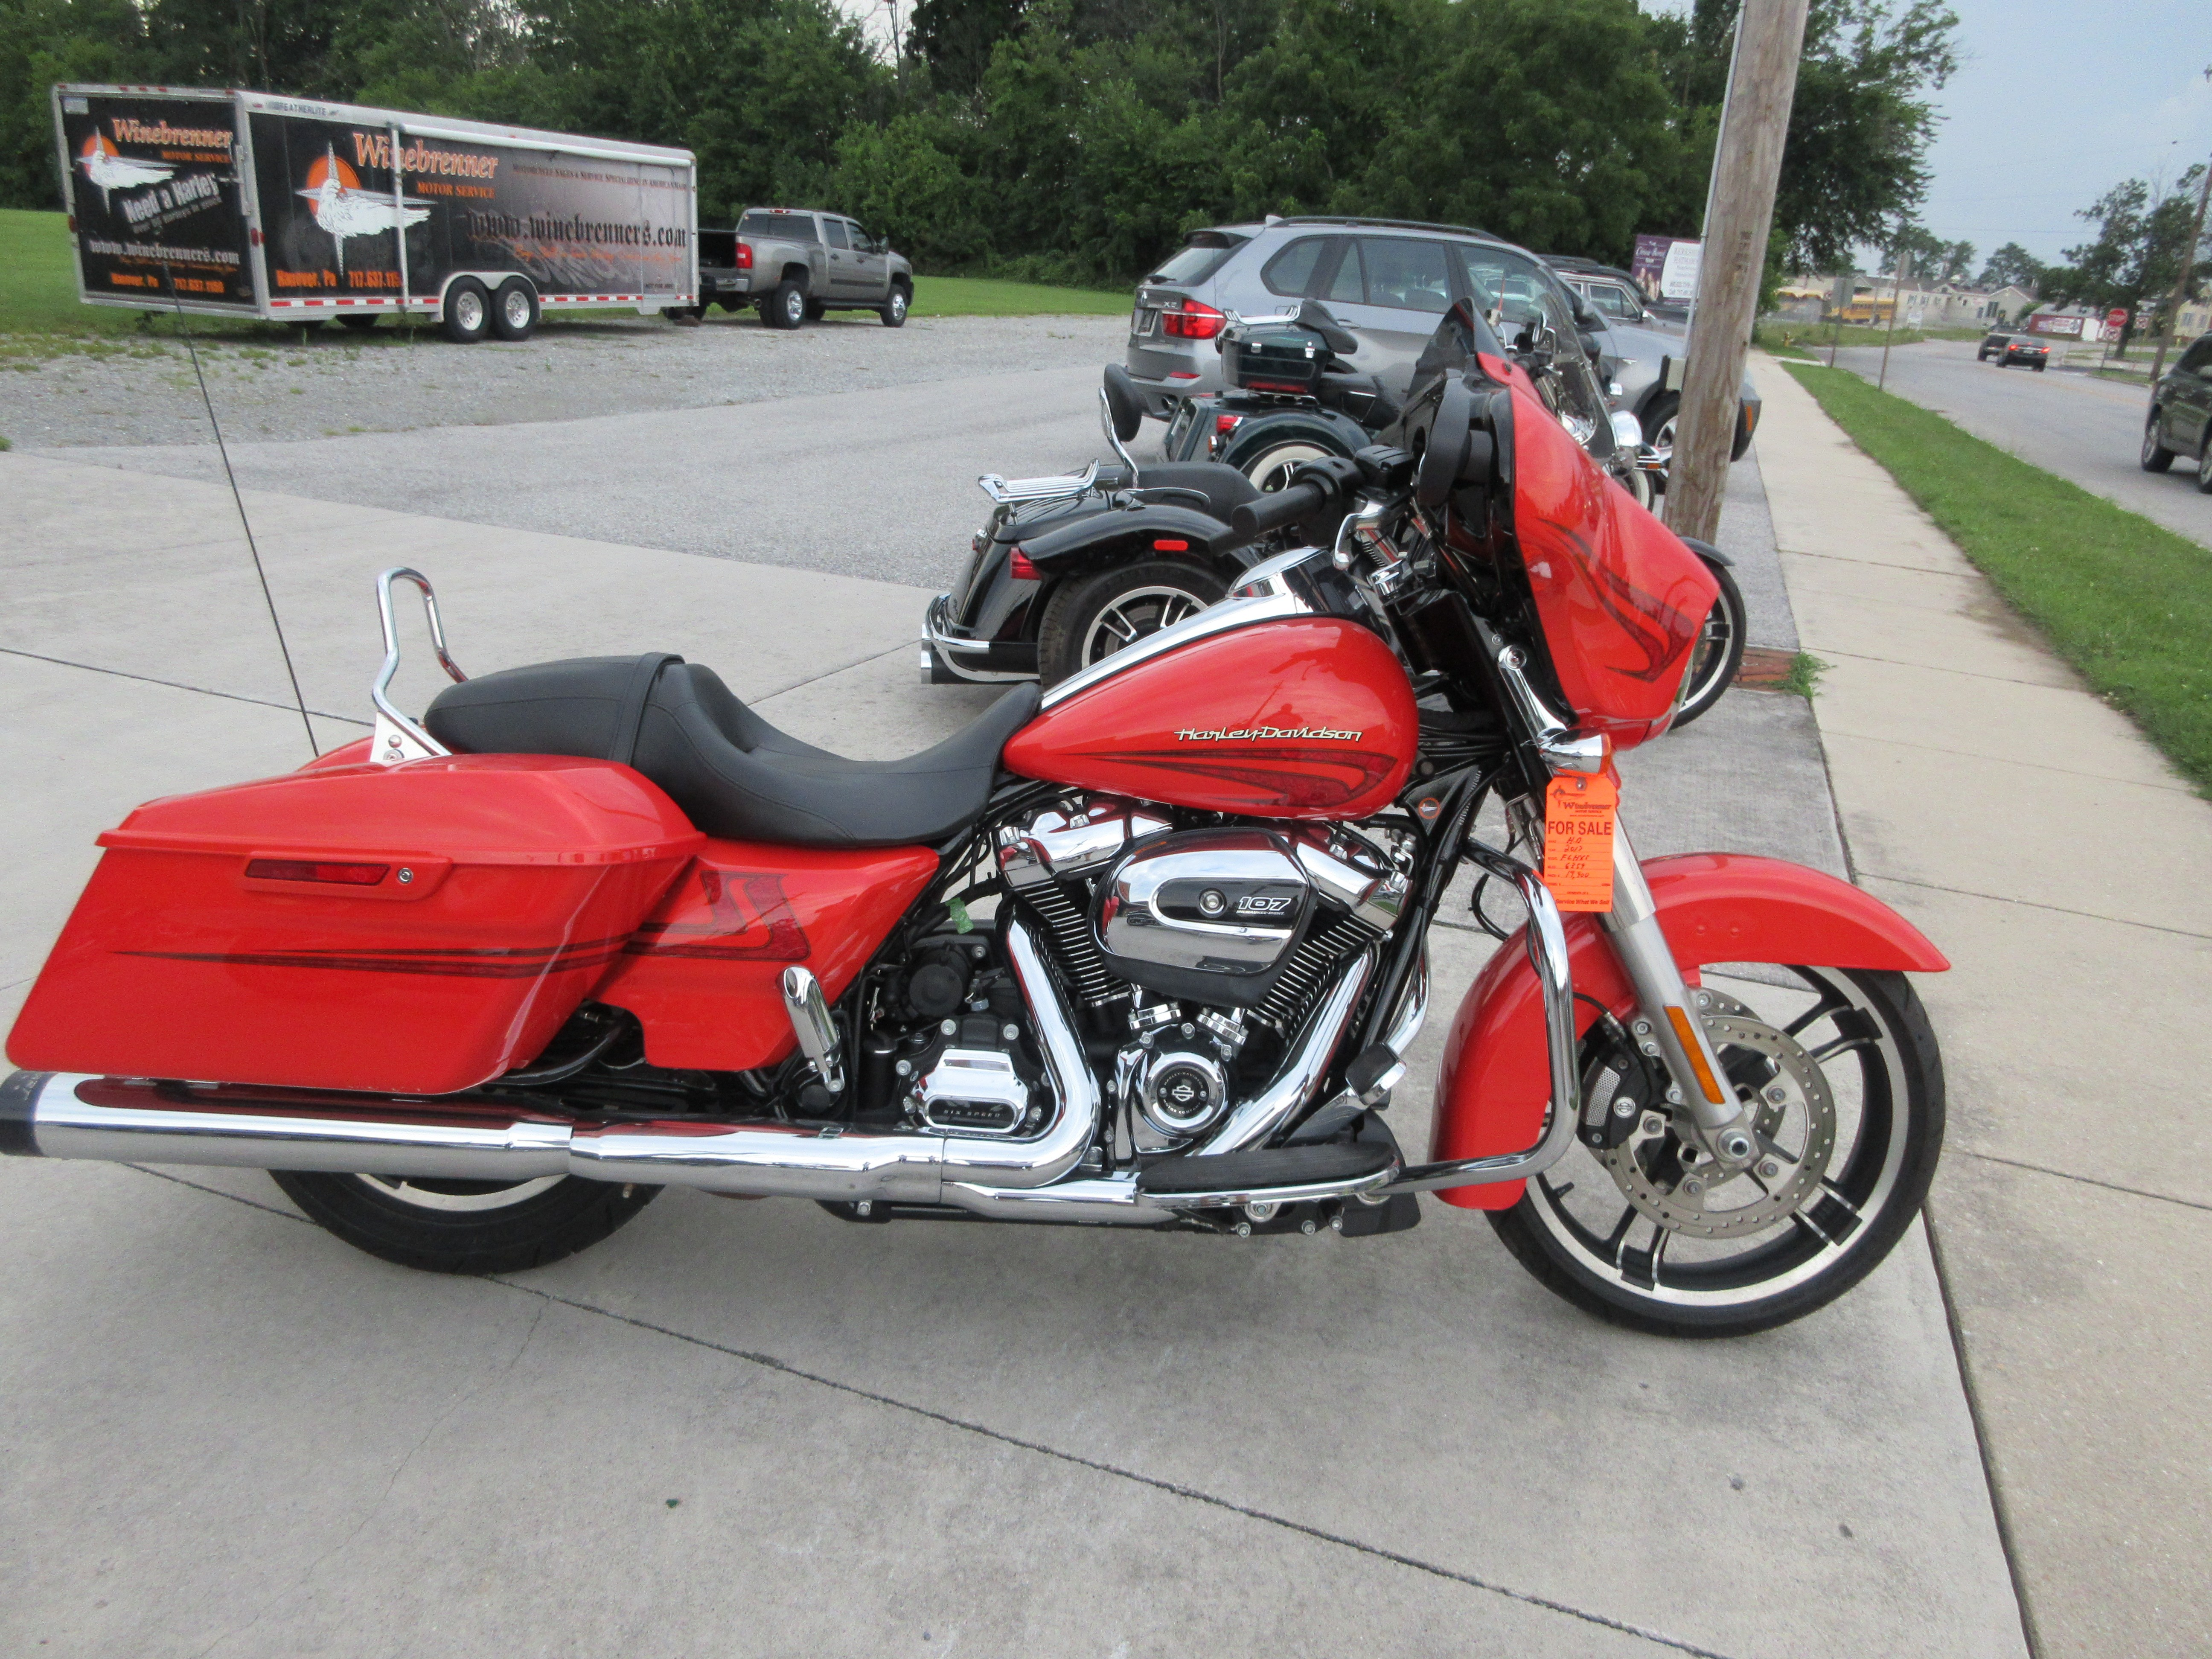 Winebrenners American Motorcycles